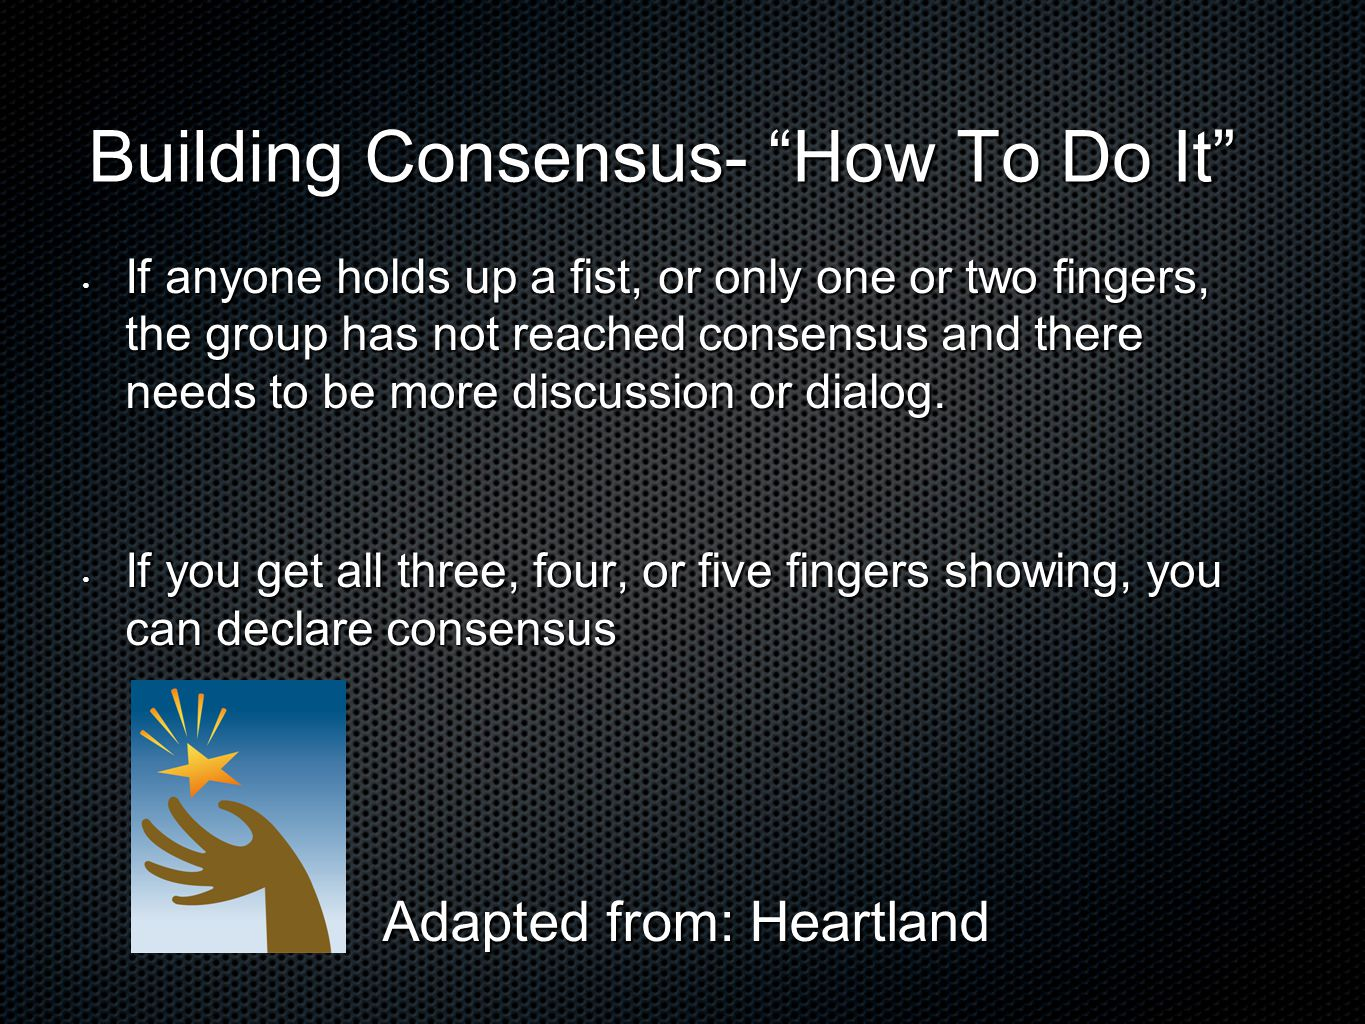 Building Consensus- How To Do It If anyone holds up a fist, or only one or two fingers, the group has not reached consensus and there needs to be more discussion or dialog.